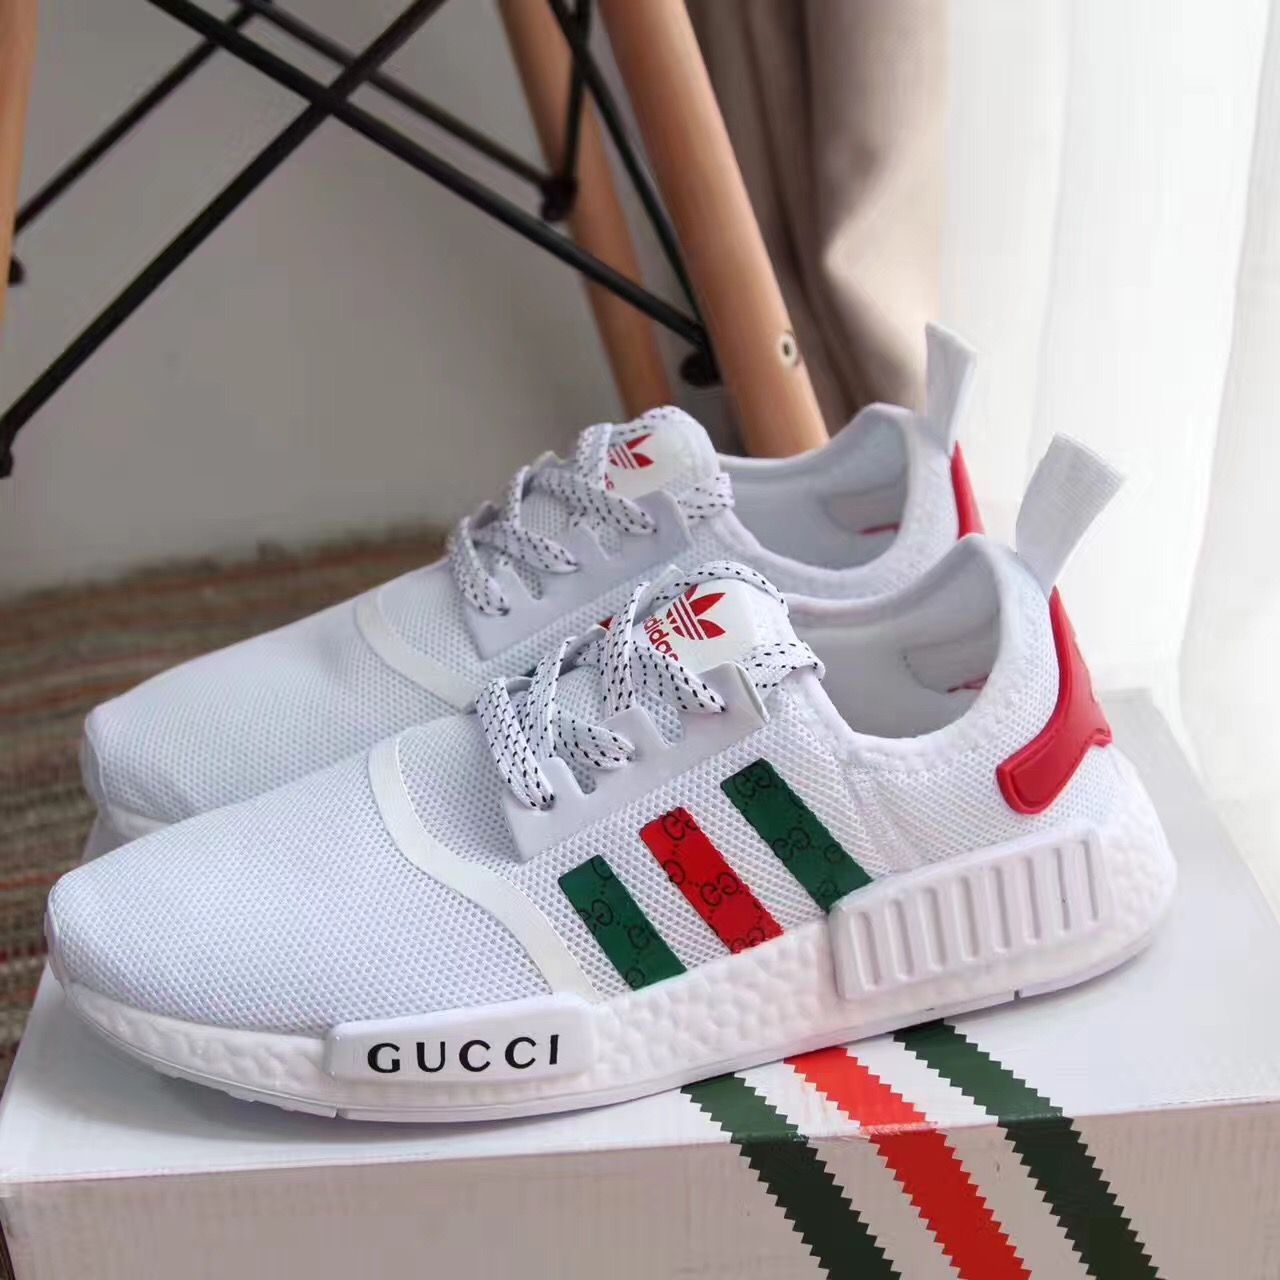 buy popular 5ab45 9353f Adidas   Gucci woman man unisex sport sneakers shoes